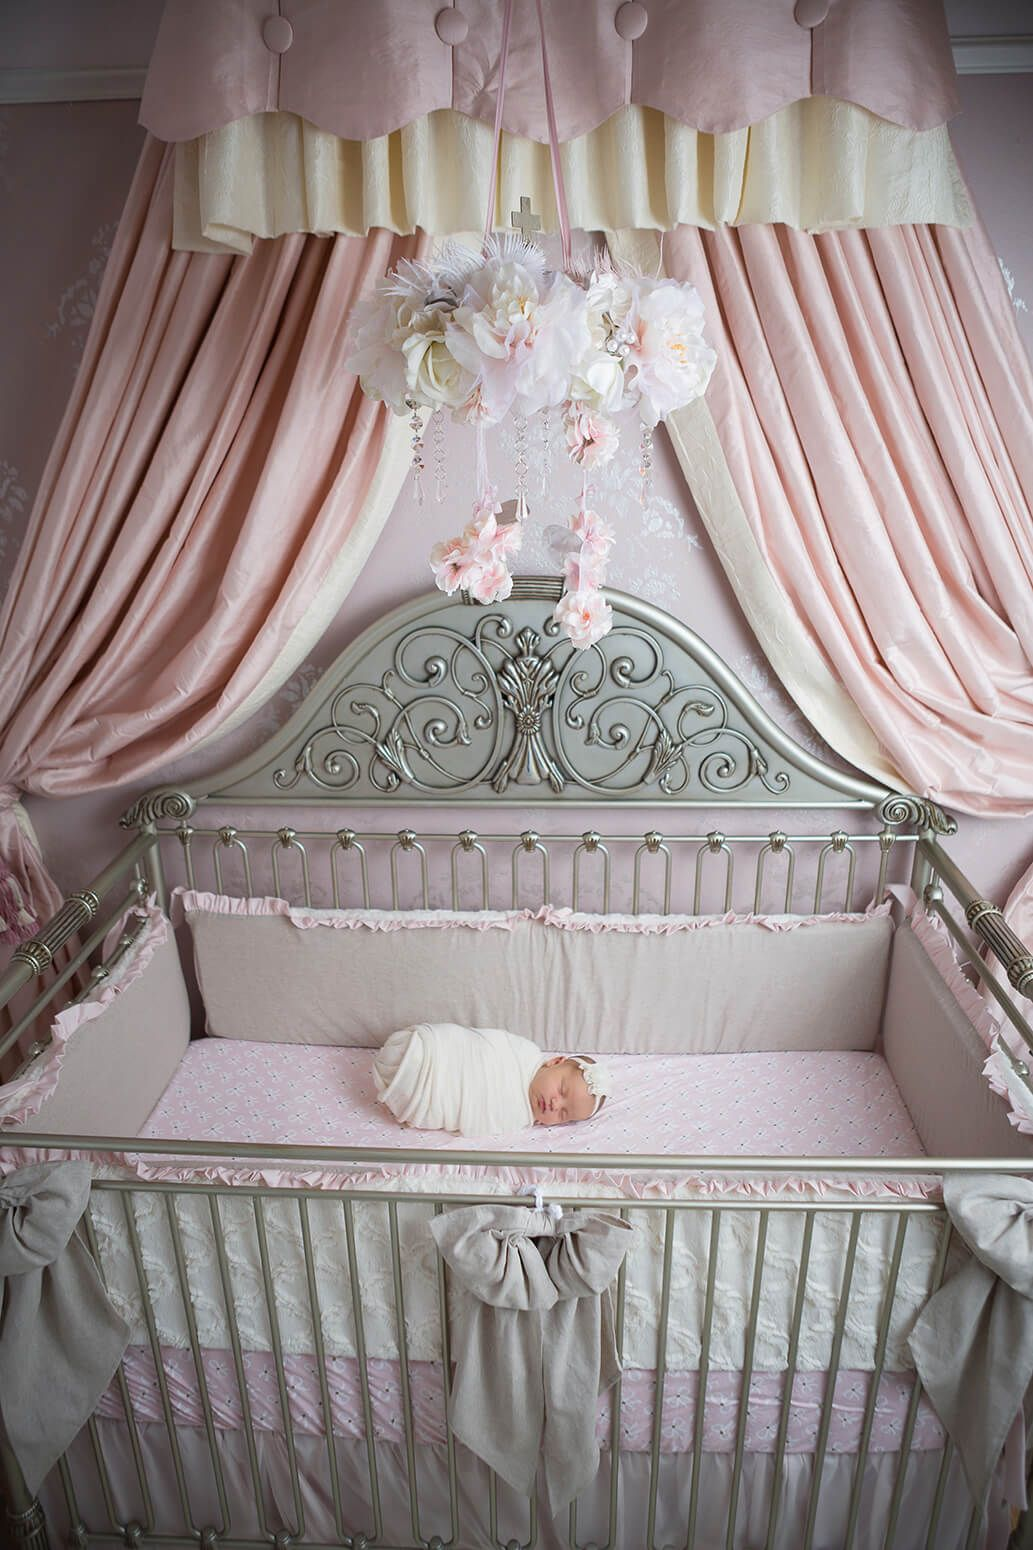 Newborn In A Custom Pink And Gray Nursery With Caden Lane Couture Bedding